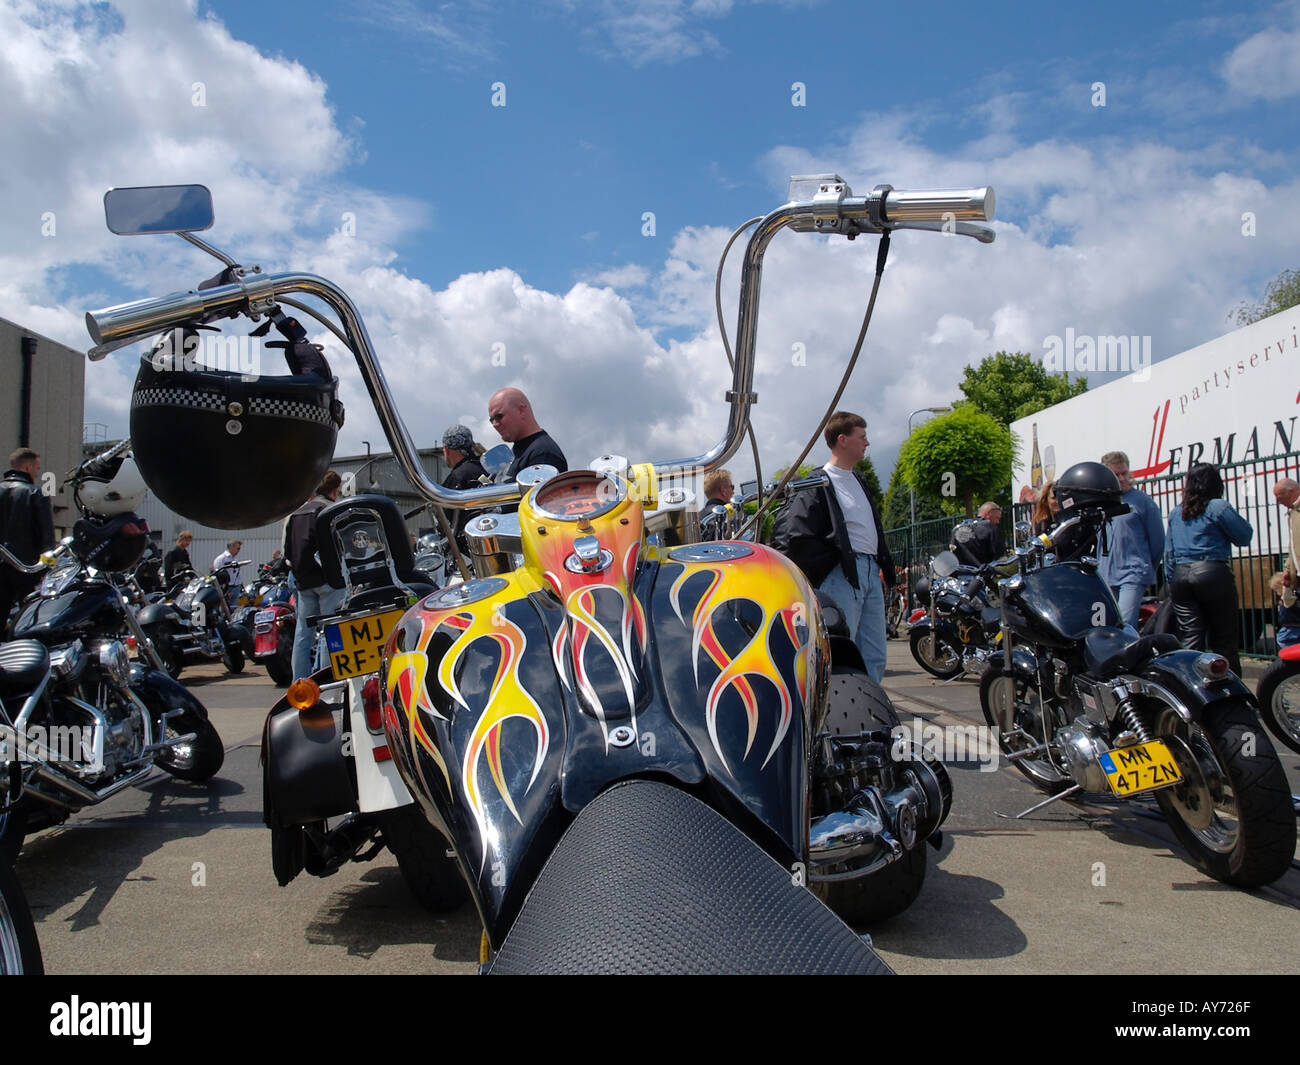 Custom Built Harley Davidson Motorcycle With Flame Paint Job And Super High Apehanger Handlebars Photographed At